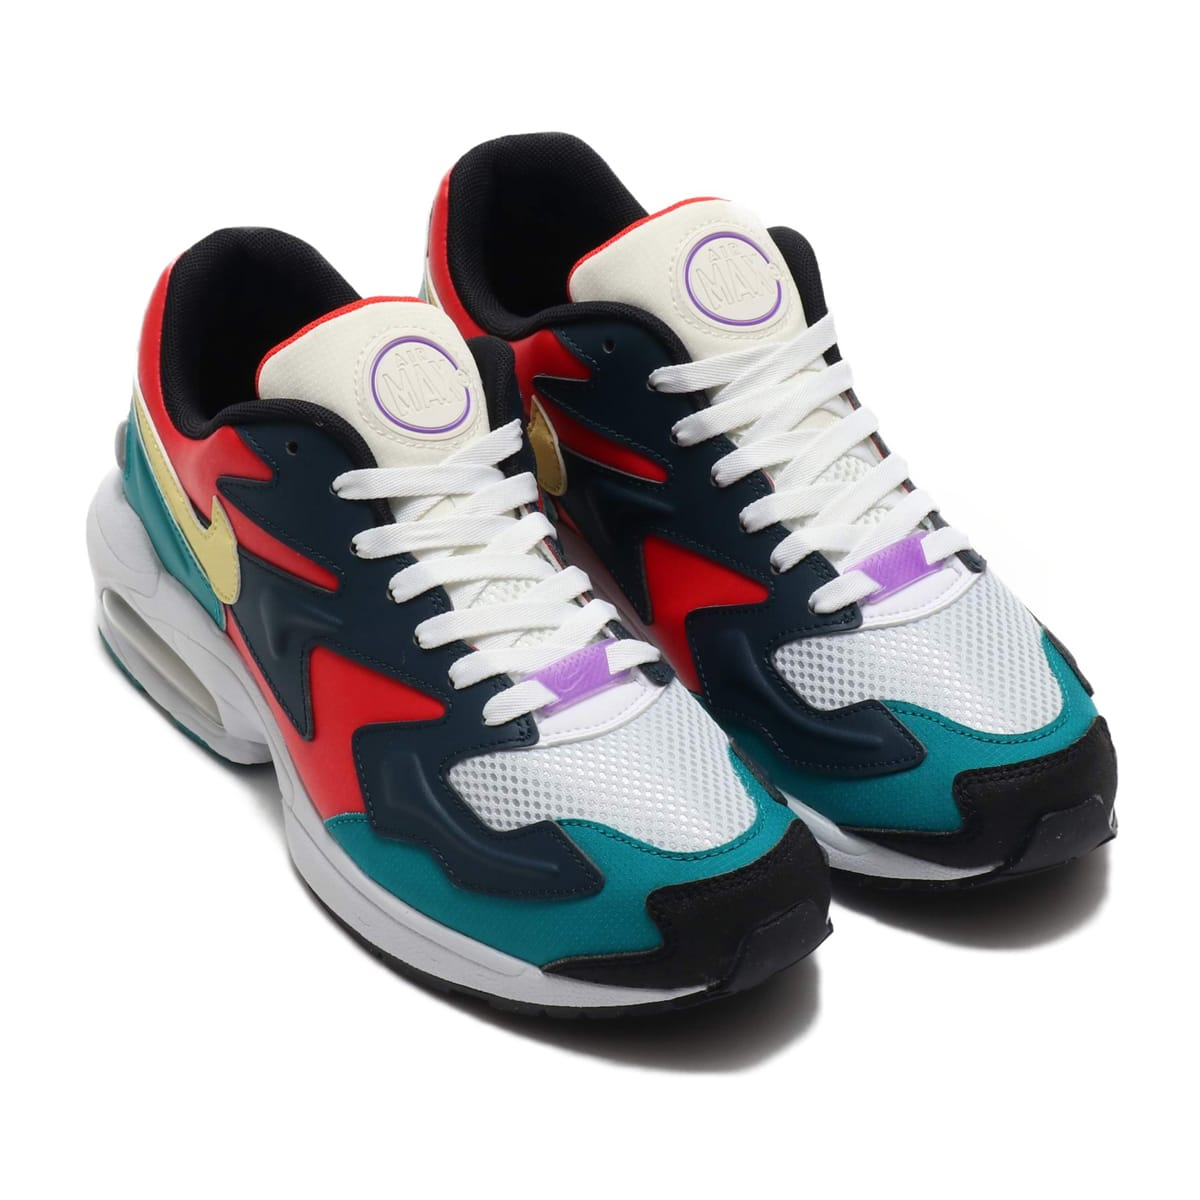 NIKE AIR MAX2 LIGHT SP HABANERO RED/ARMORY NAVY-RADIANT EMERALD 19SU-S_photo_large